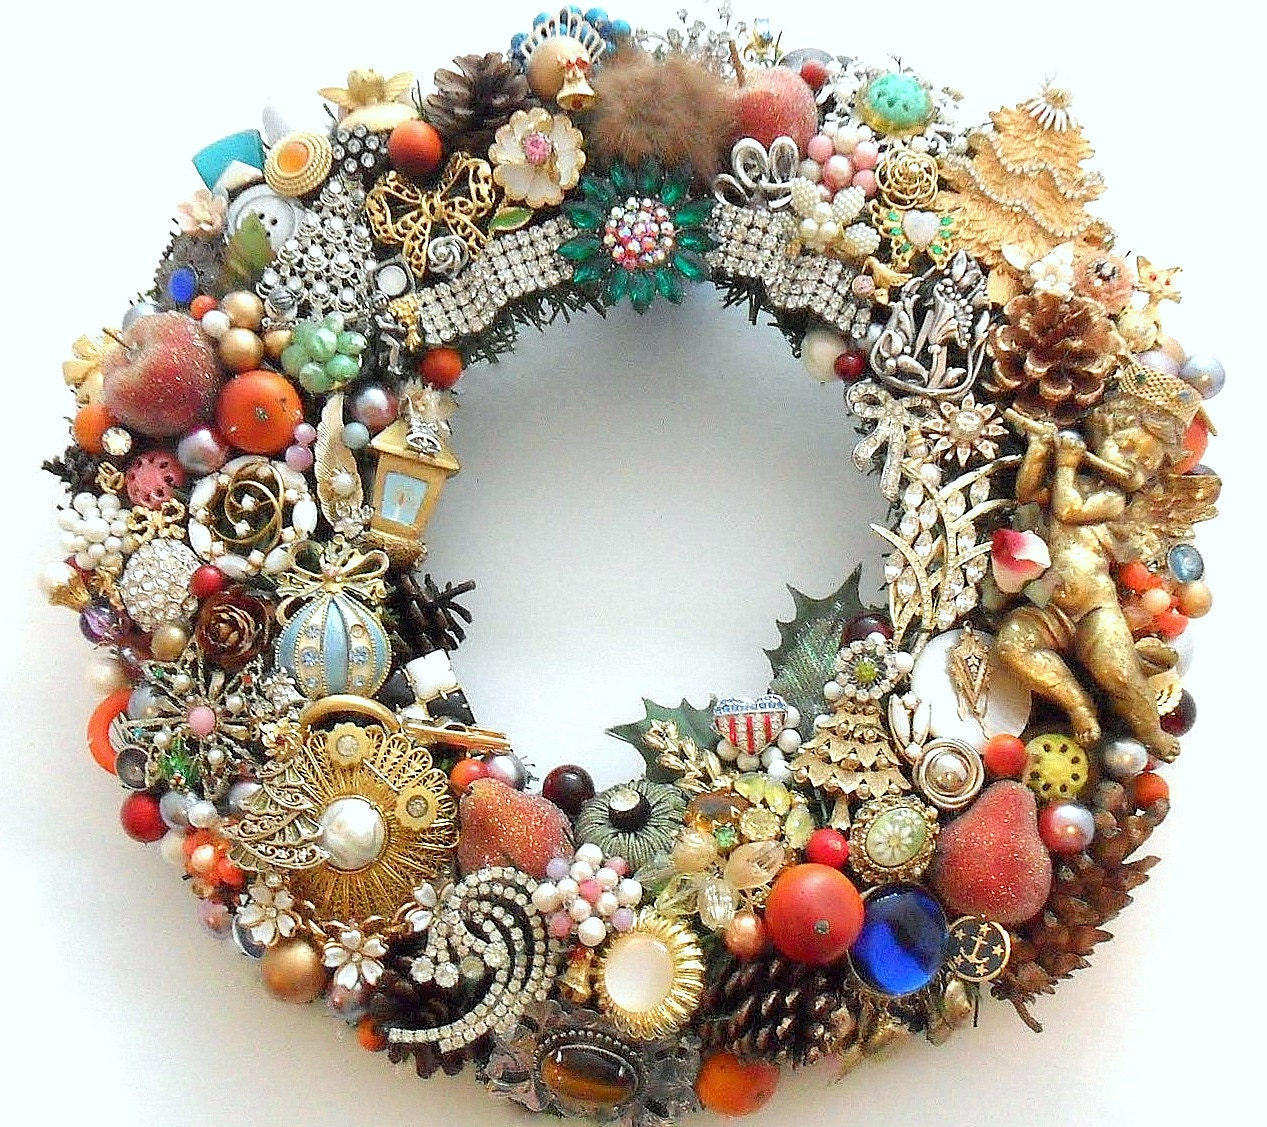 Christmas Holiday Wreath Loaded With Vintage Jewelry